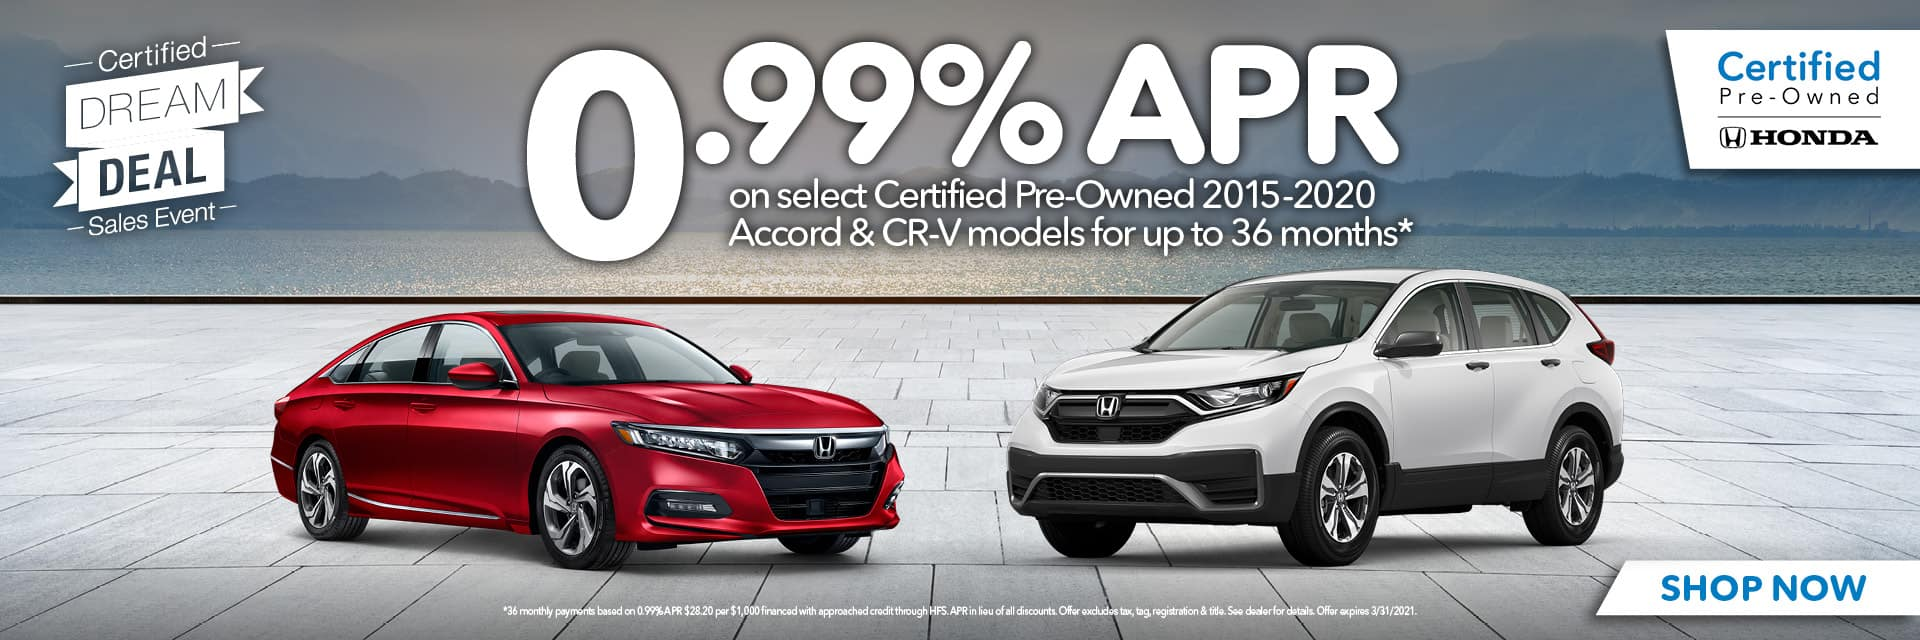 0.99% APR on Select Certified Pre-Owned